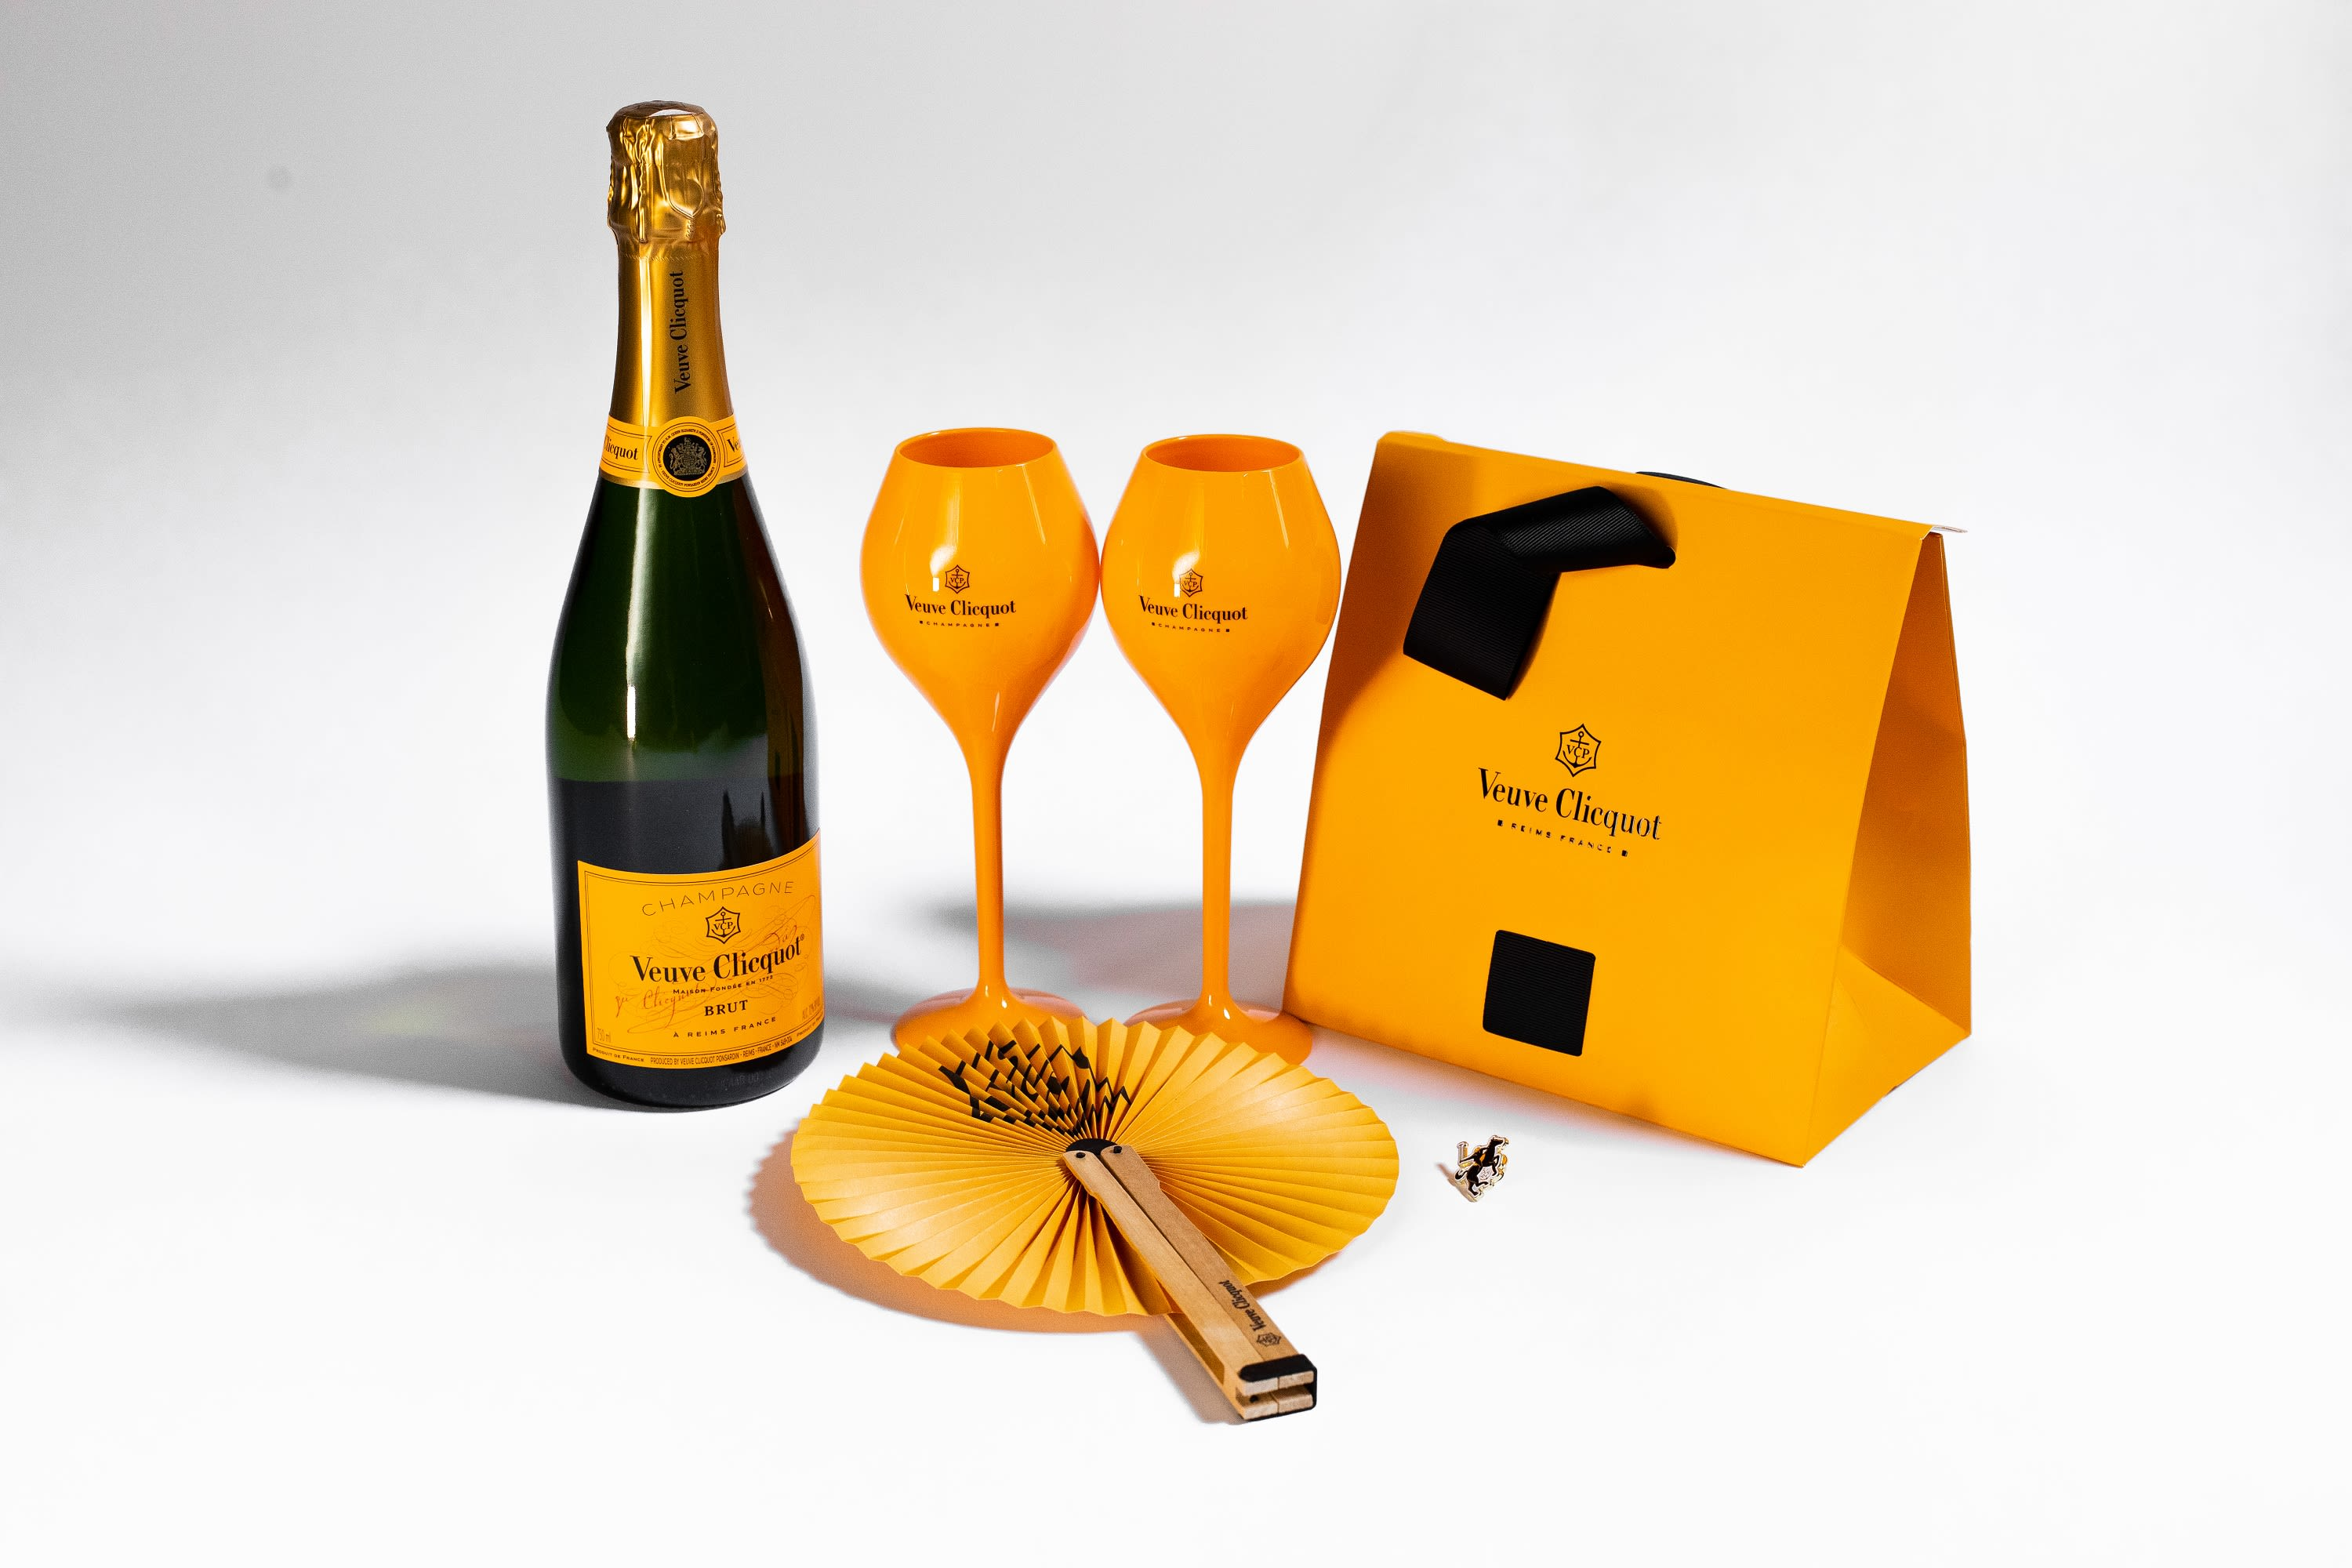 Veuve Clicquot Polo Classic Yellow Label Bottle with Lawn Essentials Set  Gift Product Image